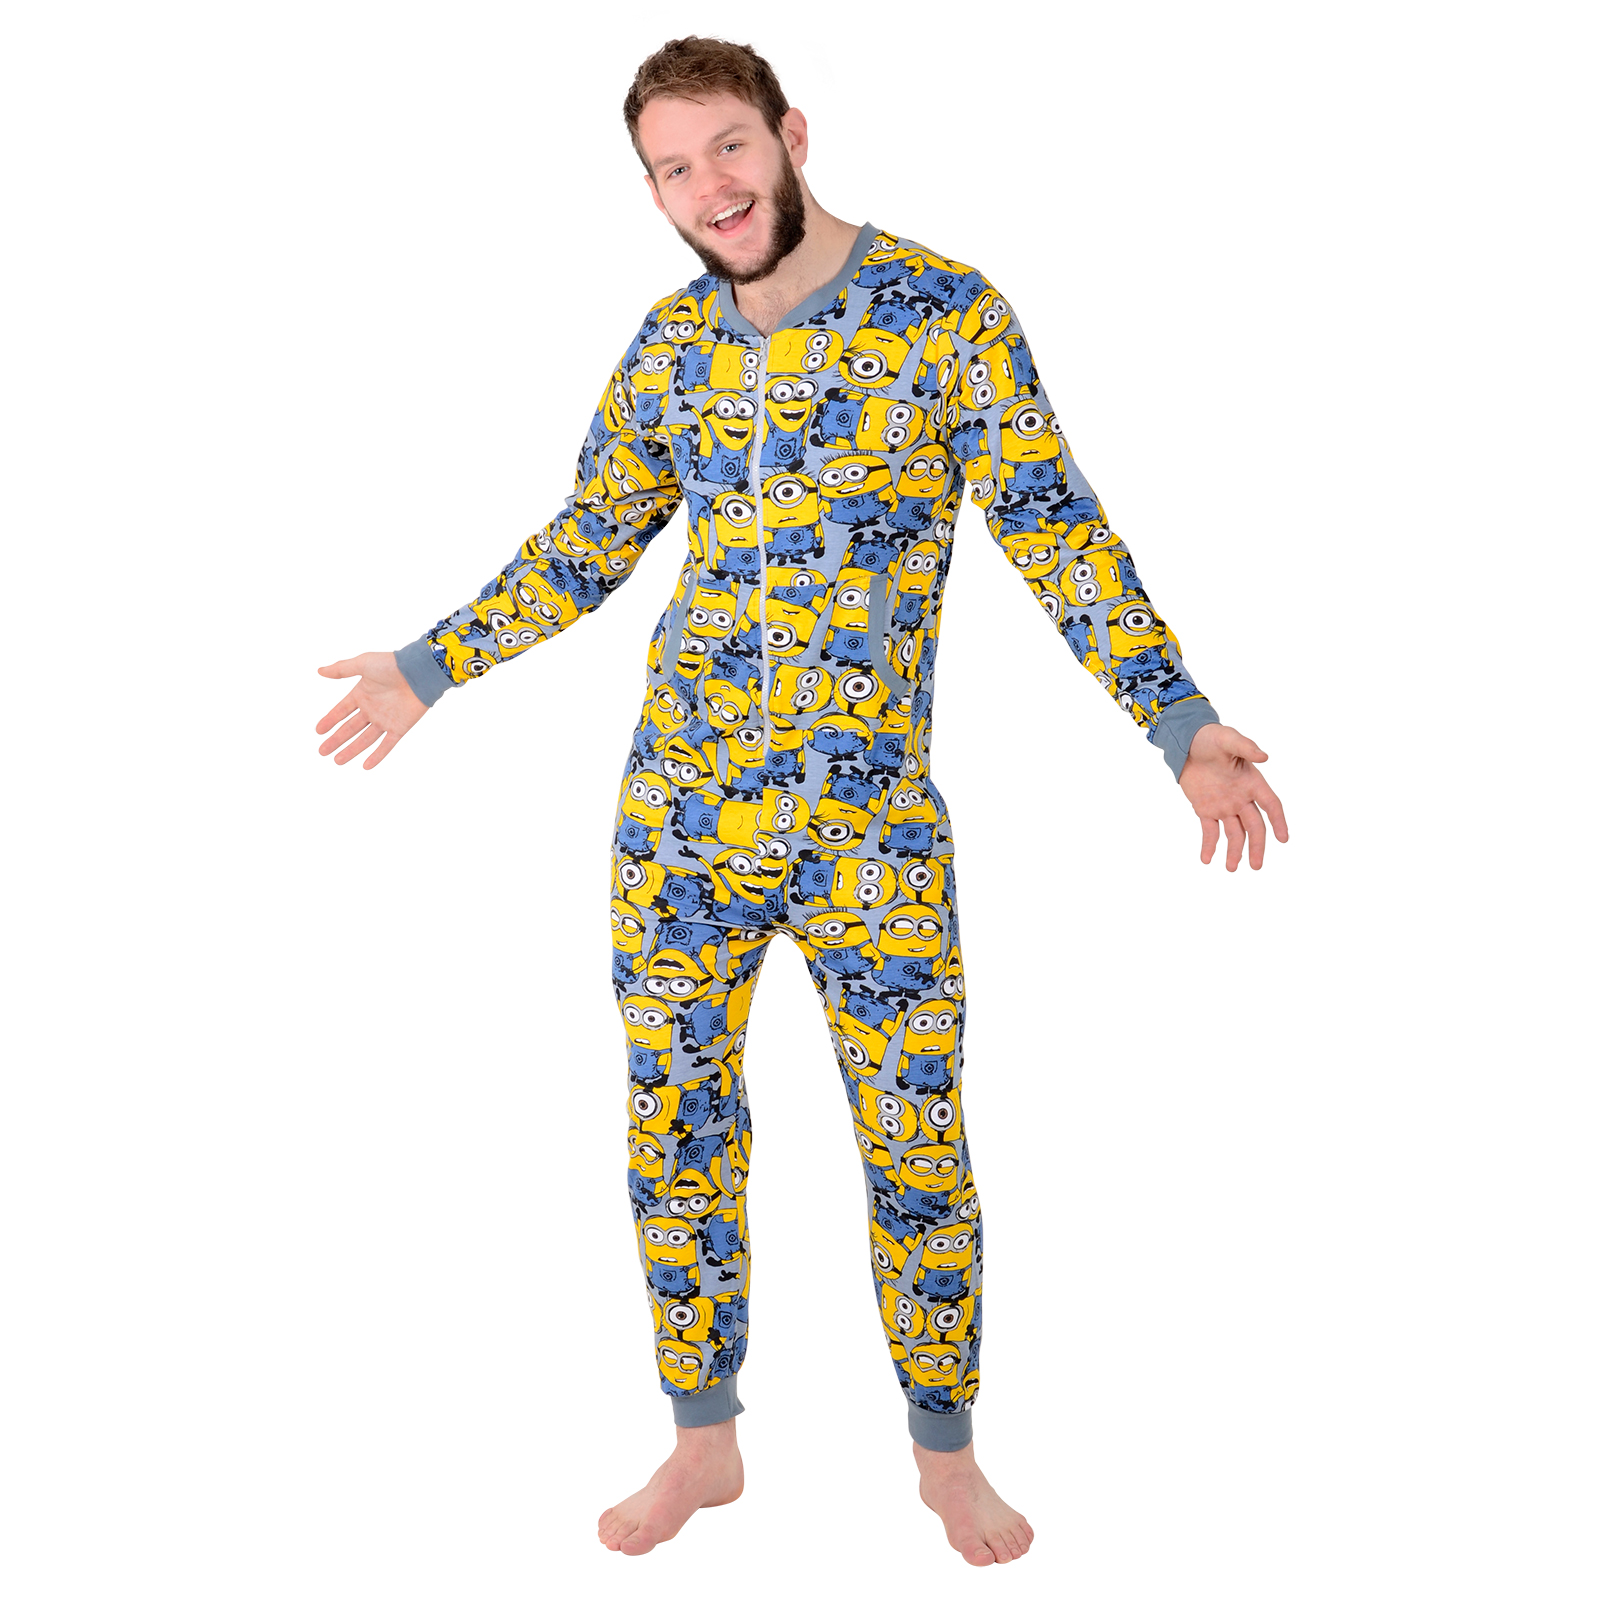 Check out our great range of mens pyjamas and nightwear at comfoisinsi.tk Order online now for next day delivery and free returns. Check out our great range of mens pyjamas and nightwear at comfoisinsi.tk Order online now for next day delivery and free returns.